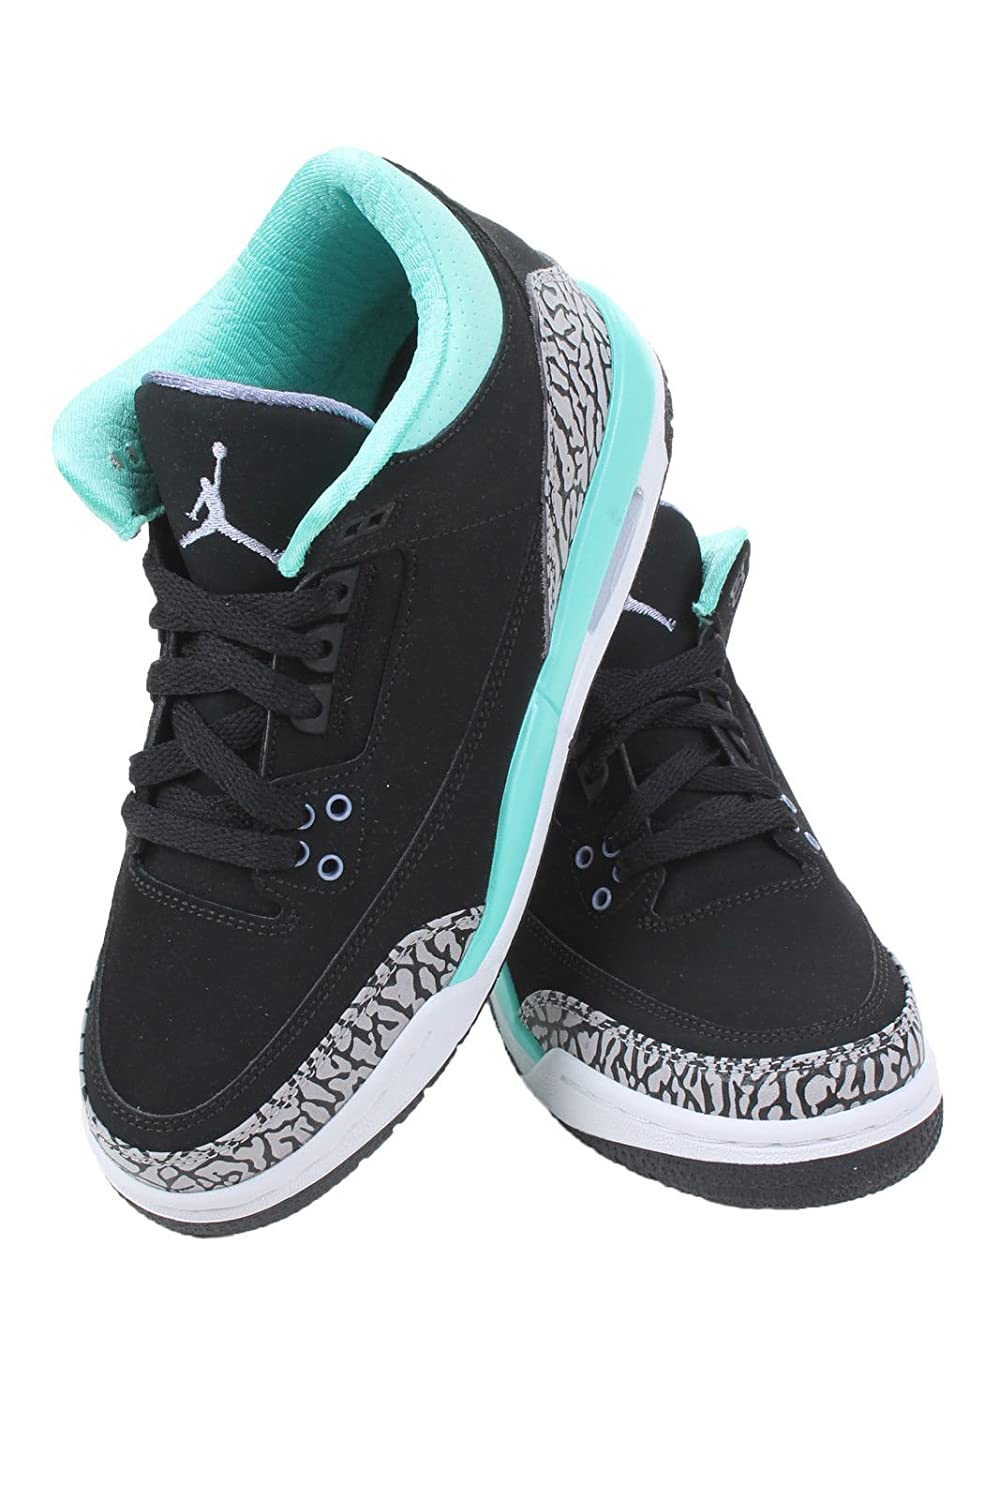 on sale d37a5 18db1 Amazon.com  Nike Girls Air Jordan 3 Retro (GS) Kids Black Bleached  Turquoise Wolf Grey Iron Purple 441140-045 (SIZE  6.5Y)  Shoes